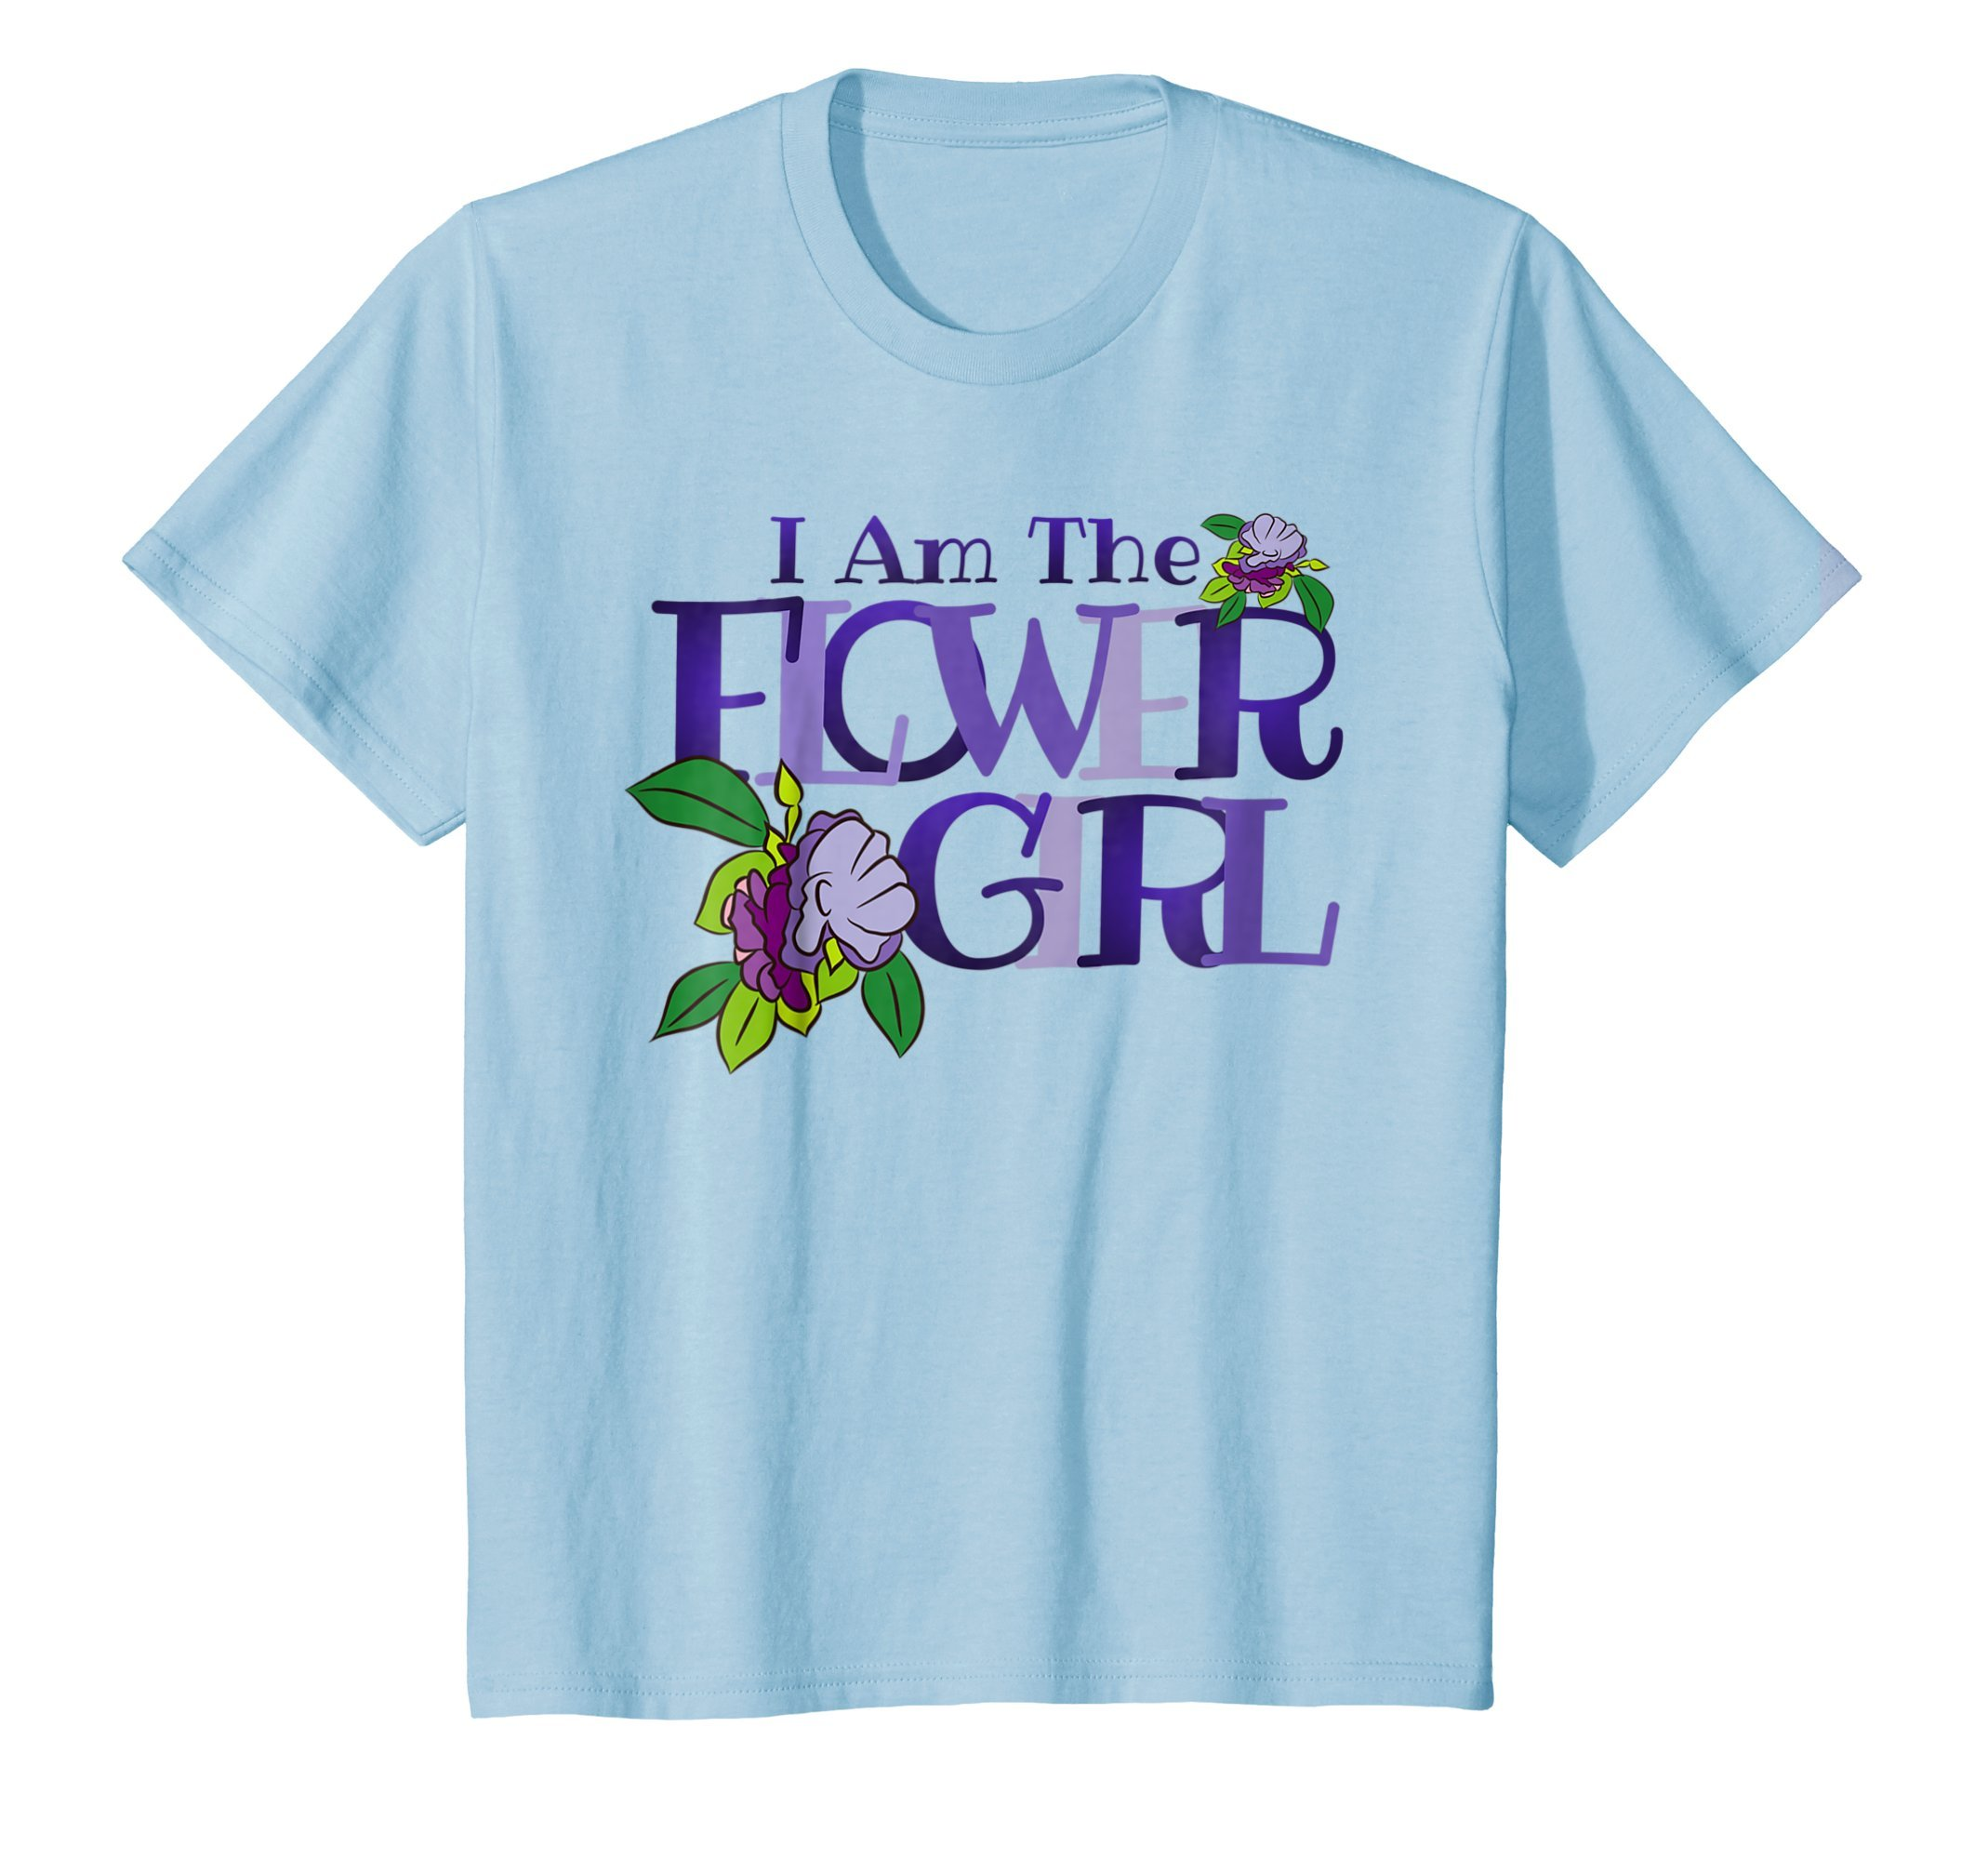 Kids Cute Flower Girl T Shirt Bridal Wedding Party Gift 6 Baby Blue